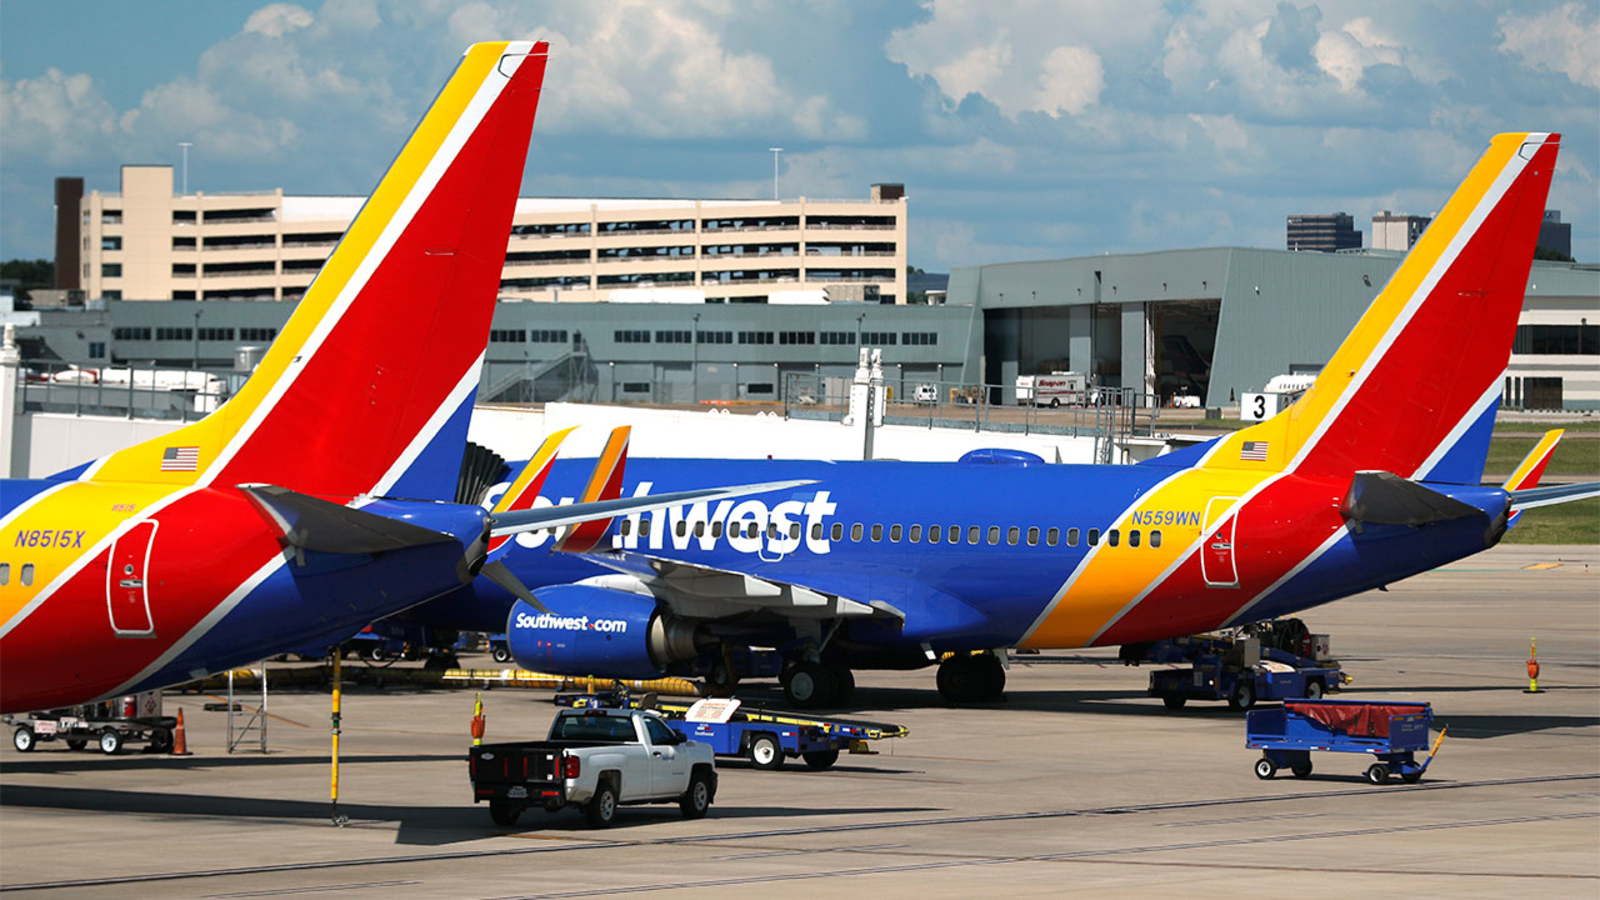 Southwest Airlines offering $29 ticket from Houston to New Orleans this spring